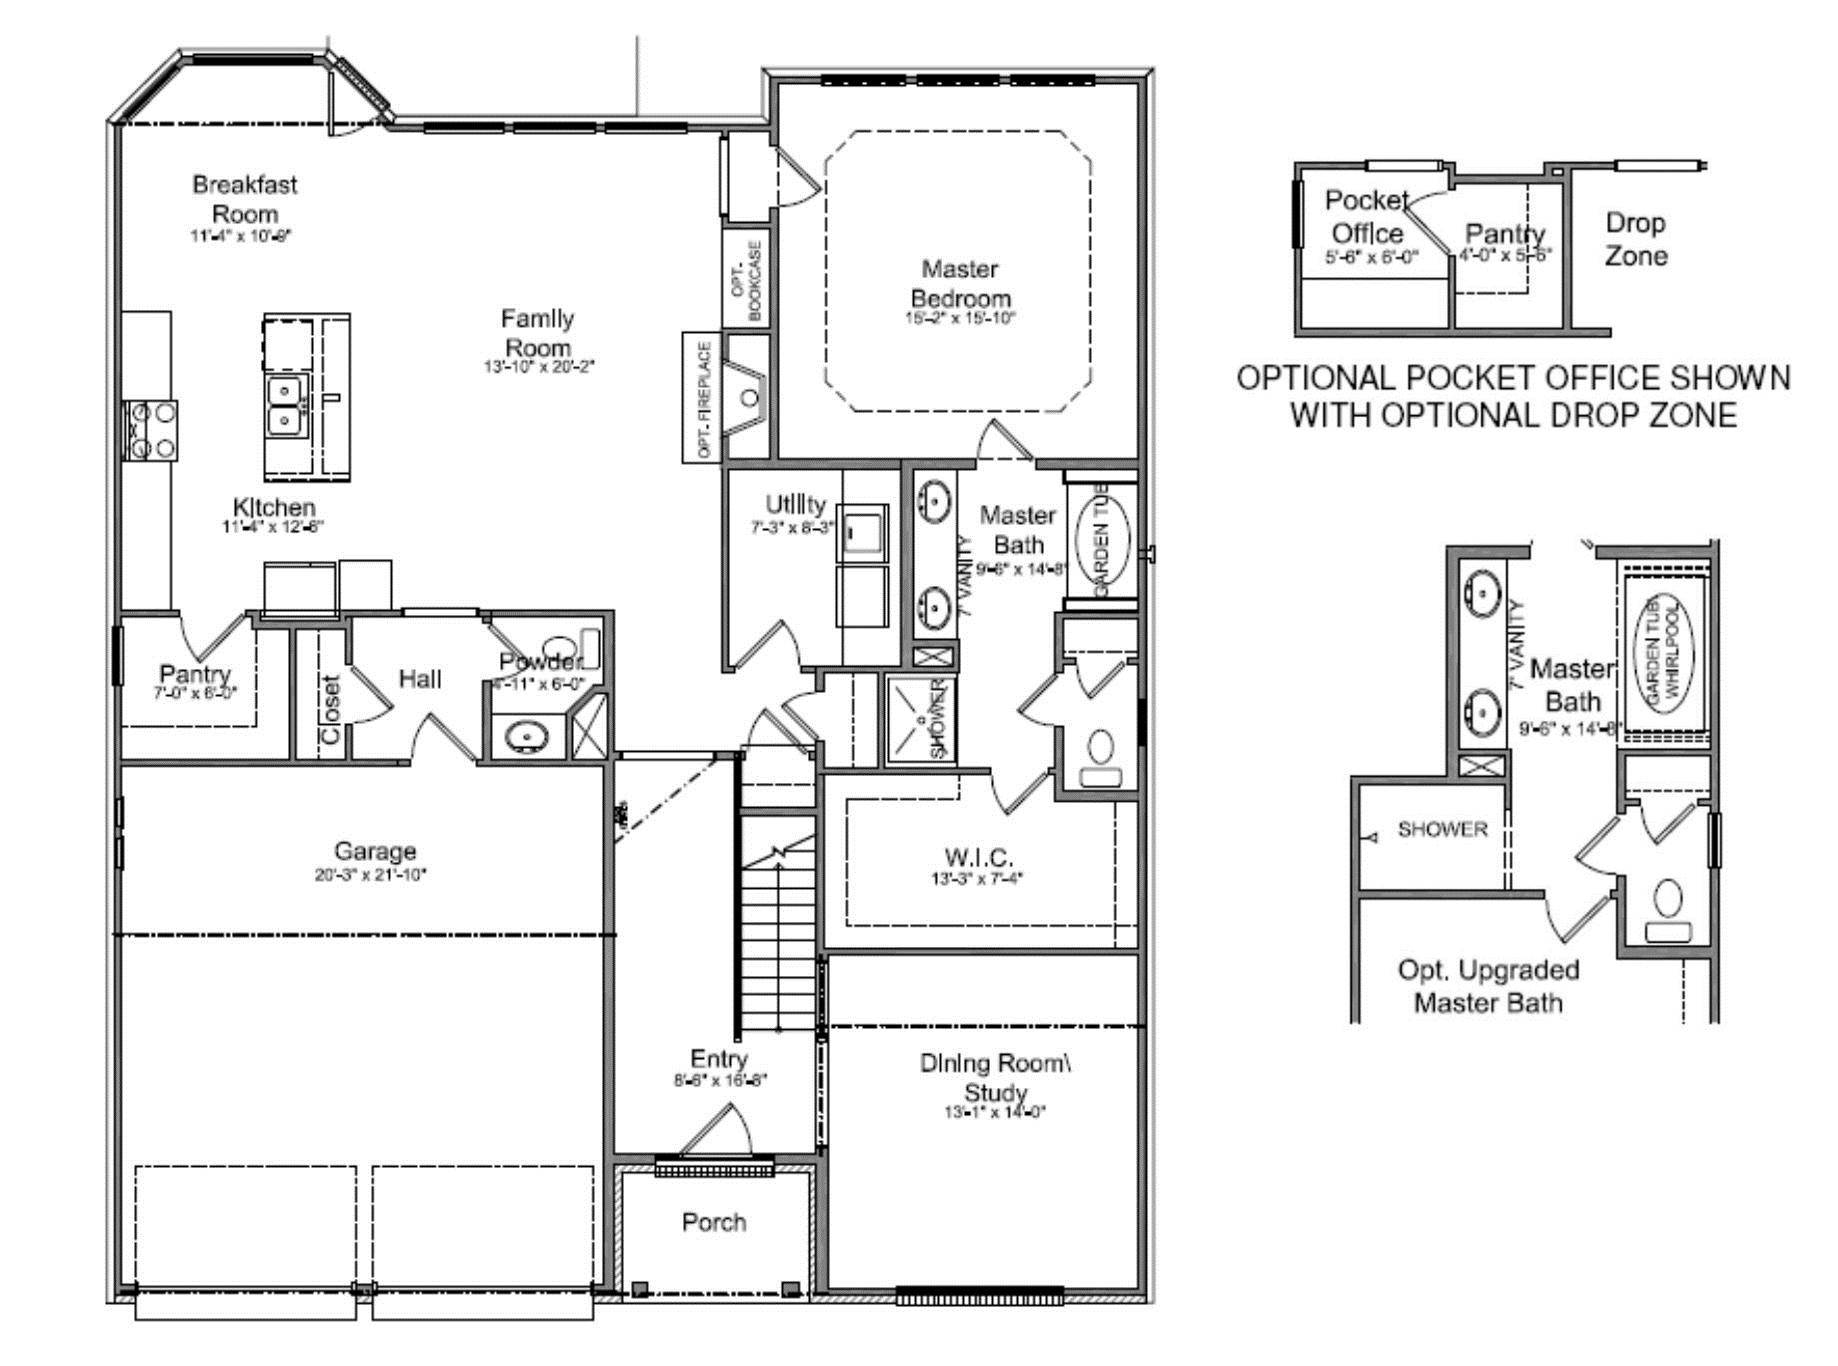 amazing walk in closet floor plan #4: Master Bedroom With Bathroom And Walk In Closet Floor Plans